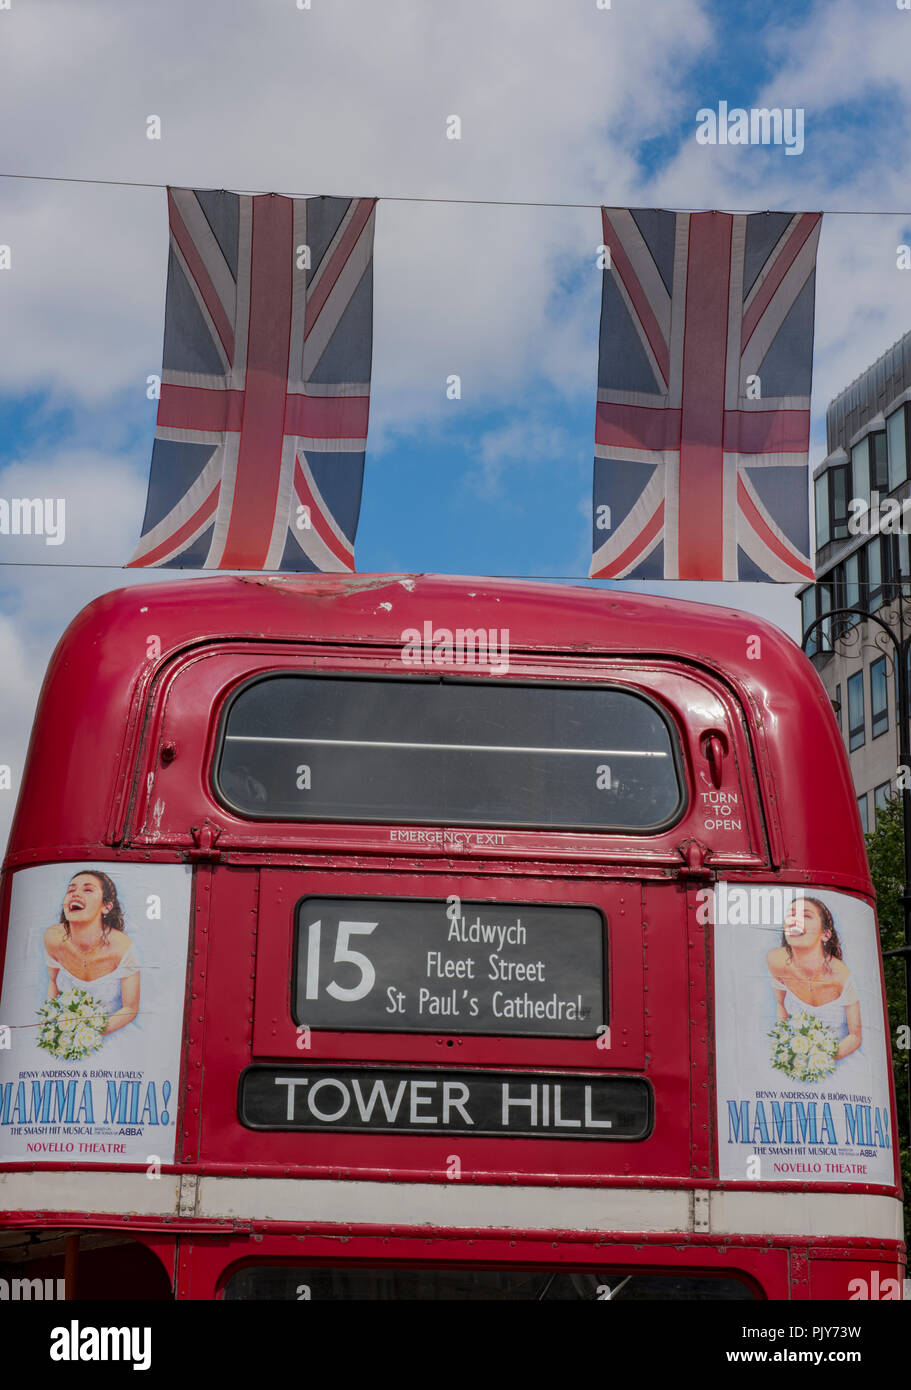 a traditional red double decker London bus with tower hill on the destination board with two union flags or union jacks flying above it. - Stock Image